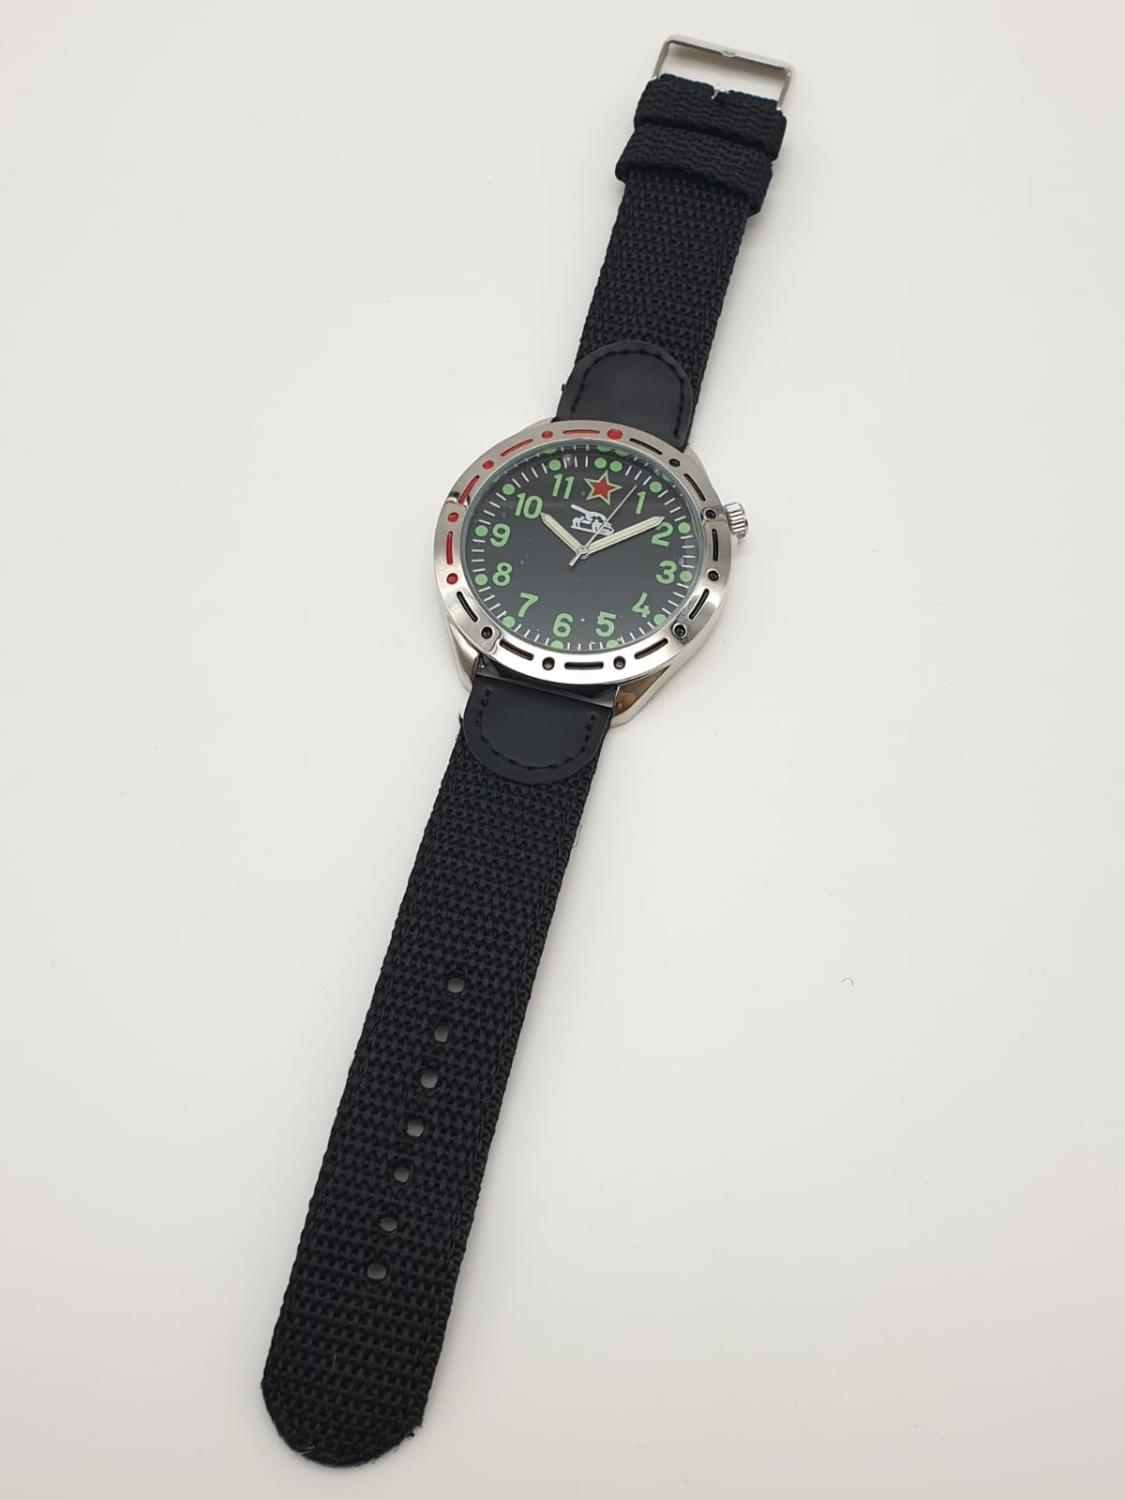 1980'S RUSSIAN TANK WATCH , BOXED AS NEW - Image 4 of 6